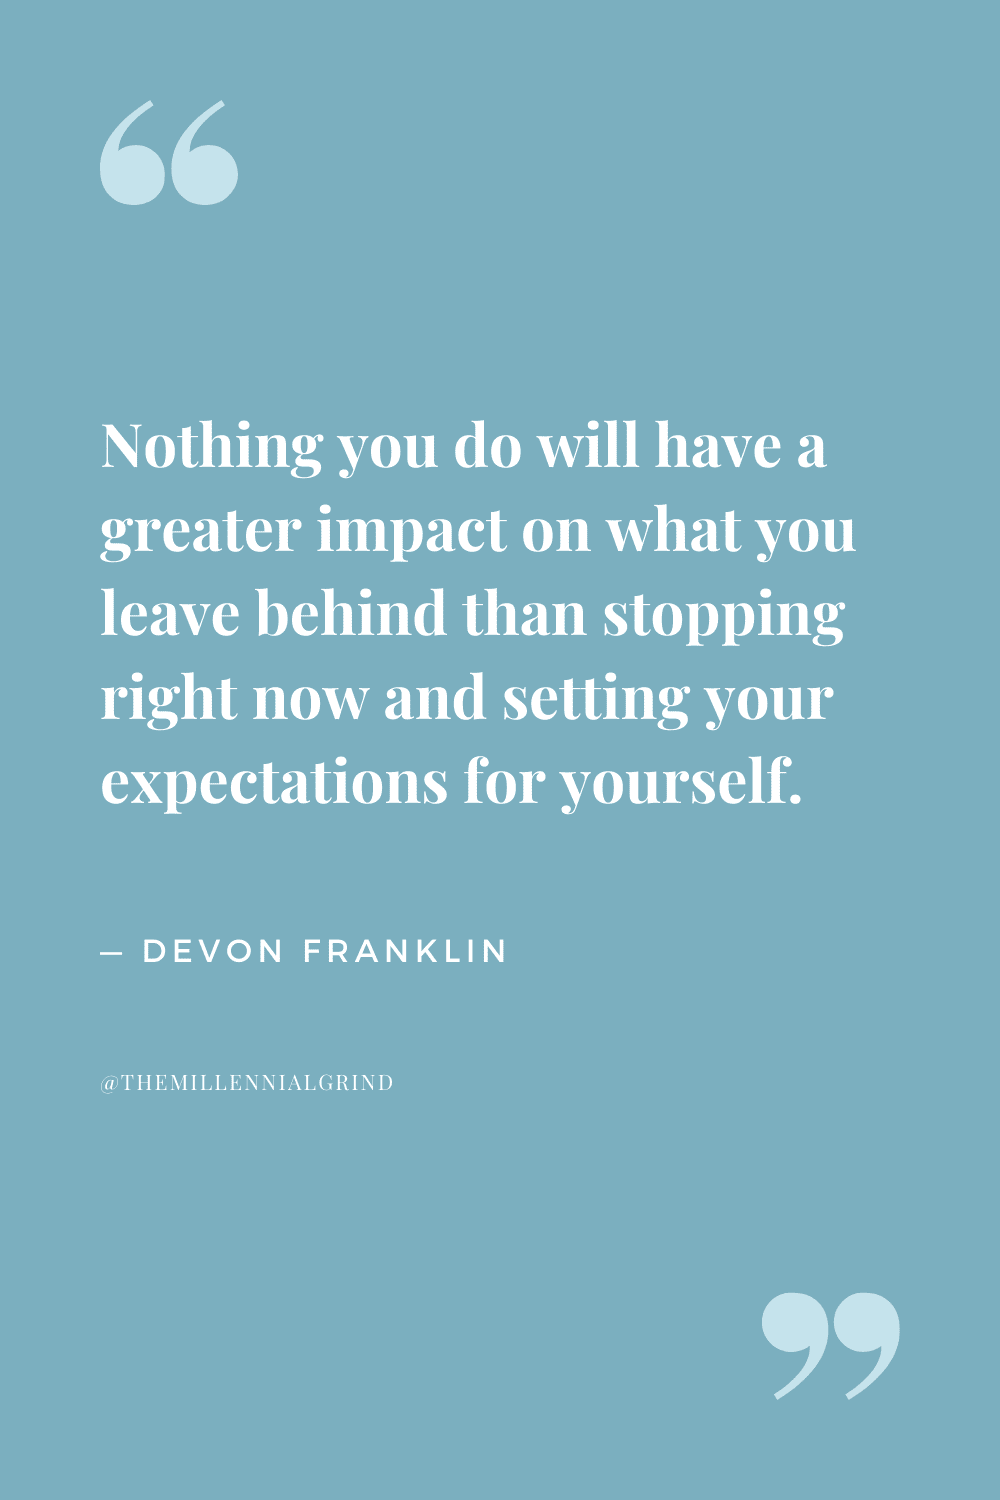 Quotes from Live Free by DeVon Franklin